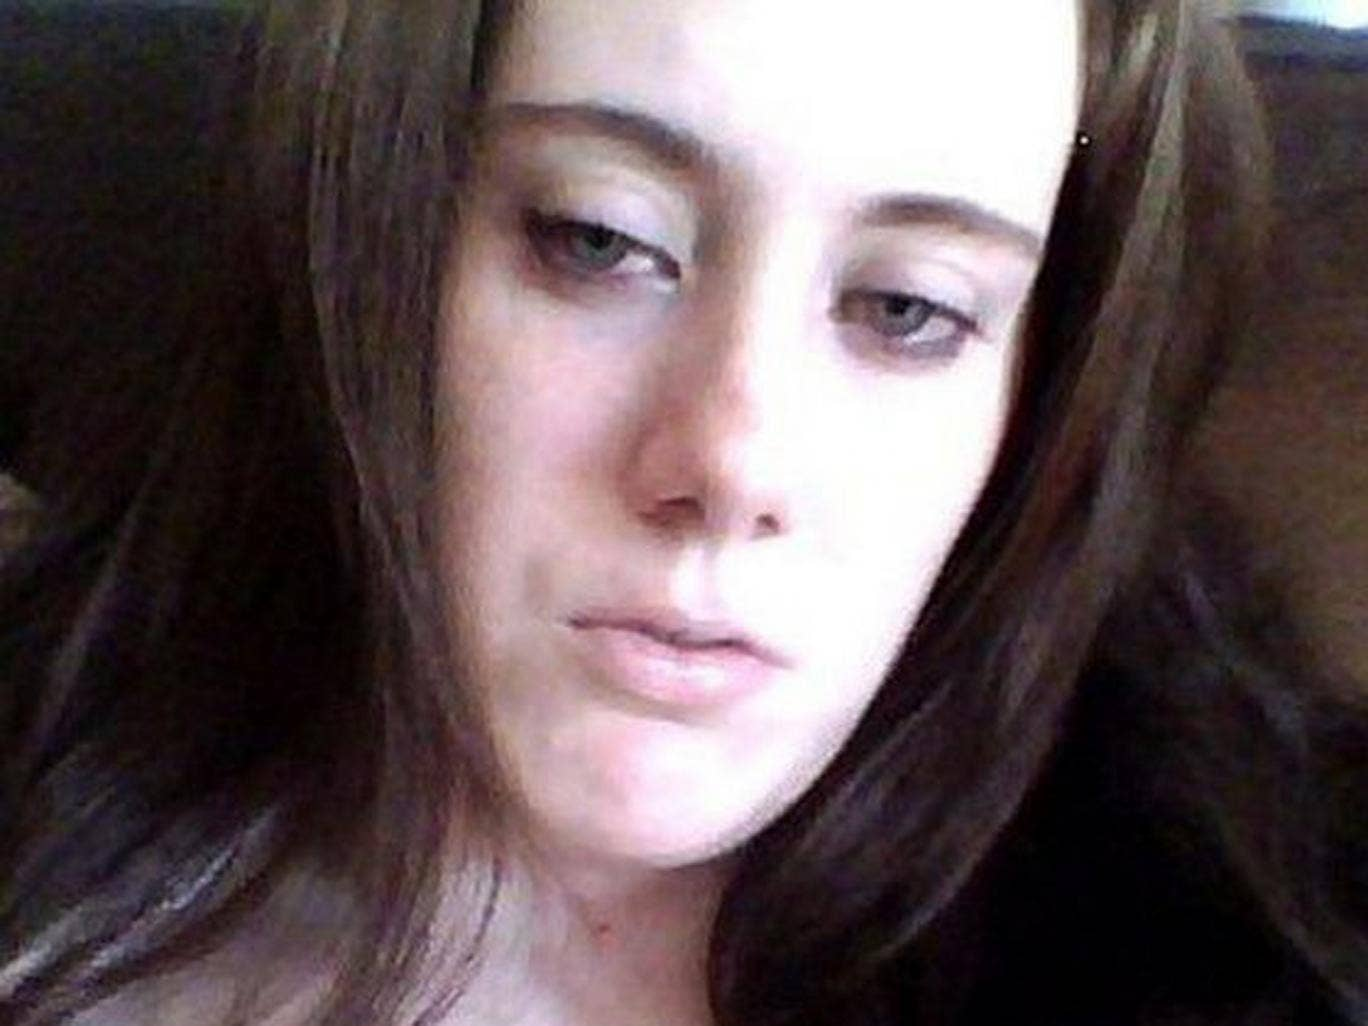 Samantha Lewthwaite, whose husband Jermaine Lindsay was one of the 7/7 suicide bombers in London